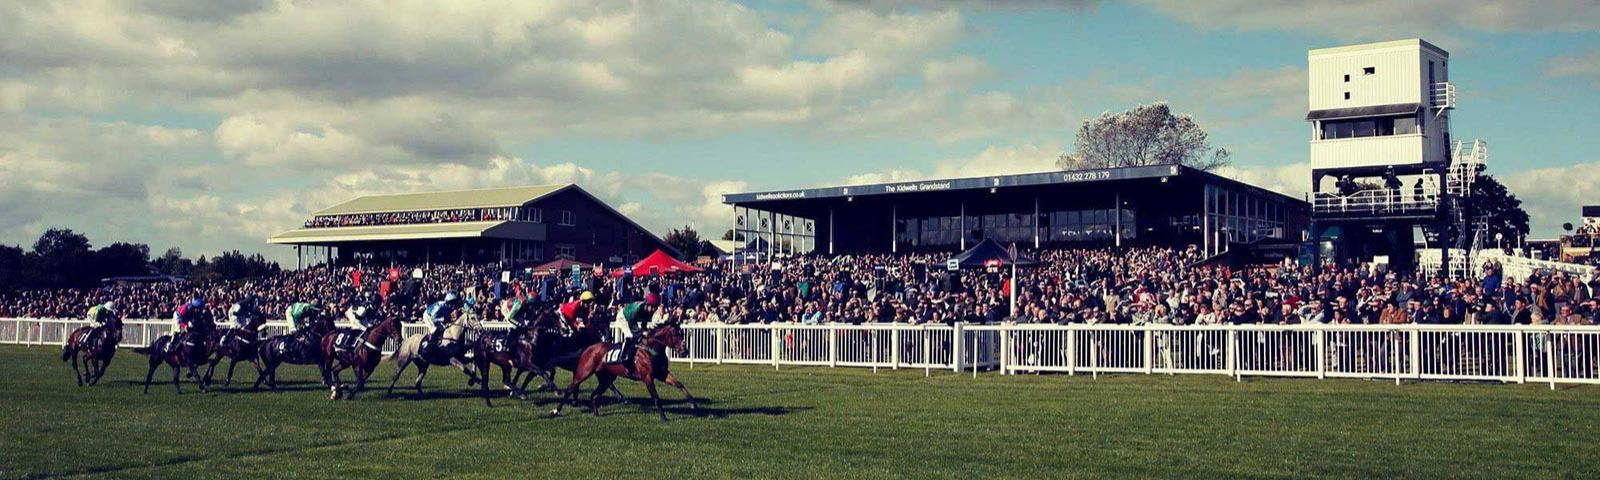 A raceday at Hereford Racecourse with crowds watching the jockeys race past.